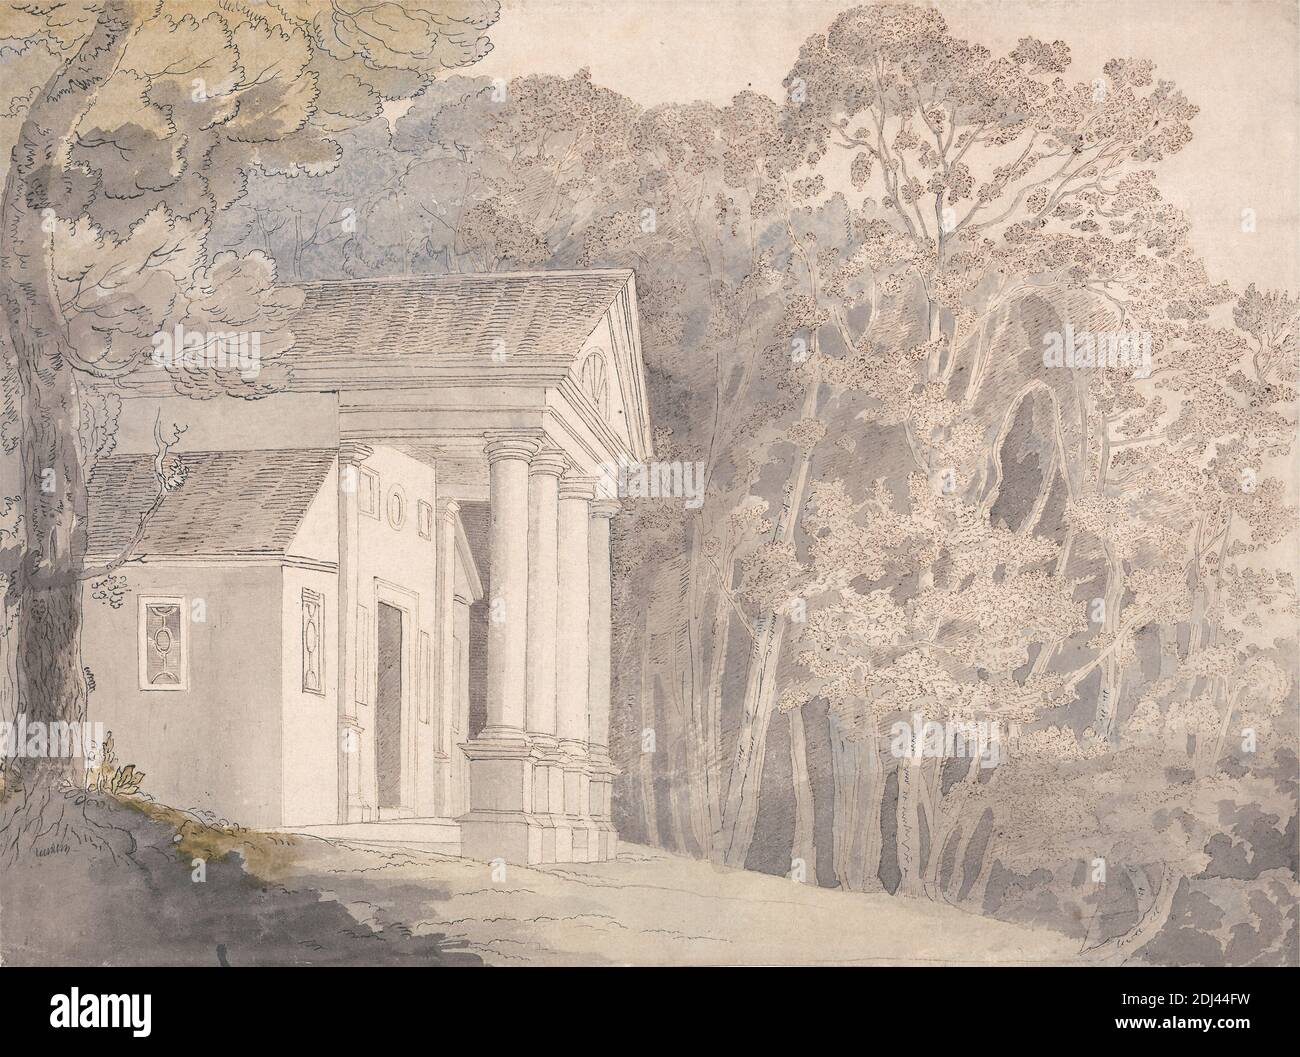 Werrington Park, Devonshire, attributed to Francis Towne, 1740–1816, British, undated, Watercolor and black and brown ink over graphite on medium slightly textured cream laid paper, Sheet: 9 5/8 x 13 inches (24.4 x 33 cm), building, columns, landscape, trees, Devon, Devonshire Stock Photo